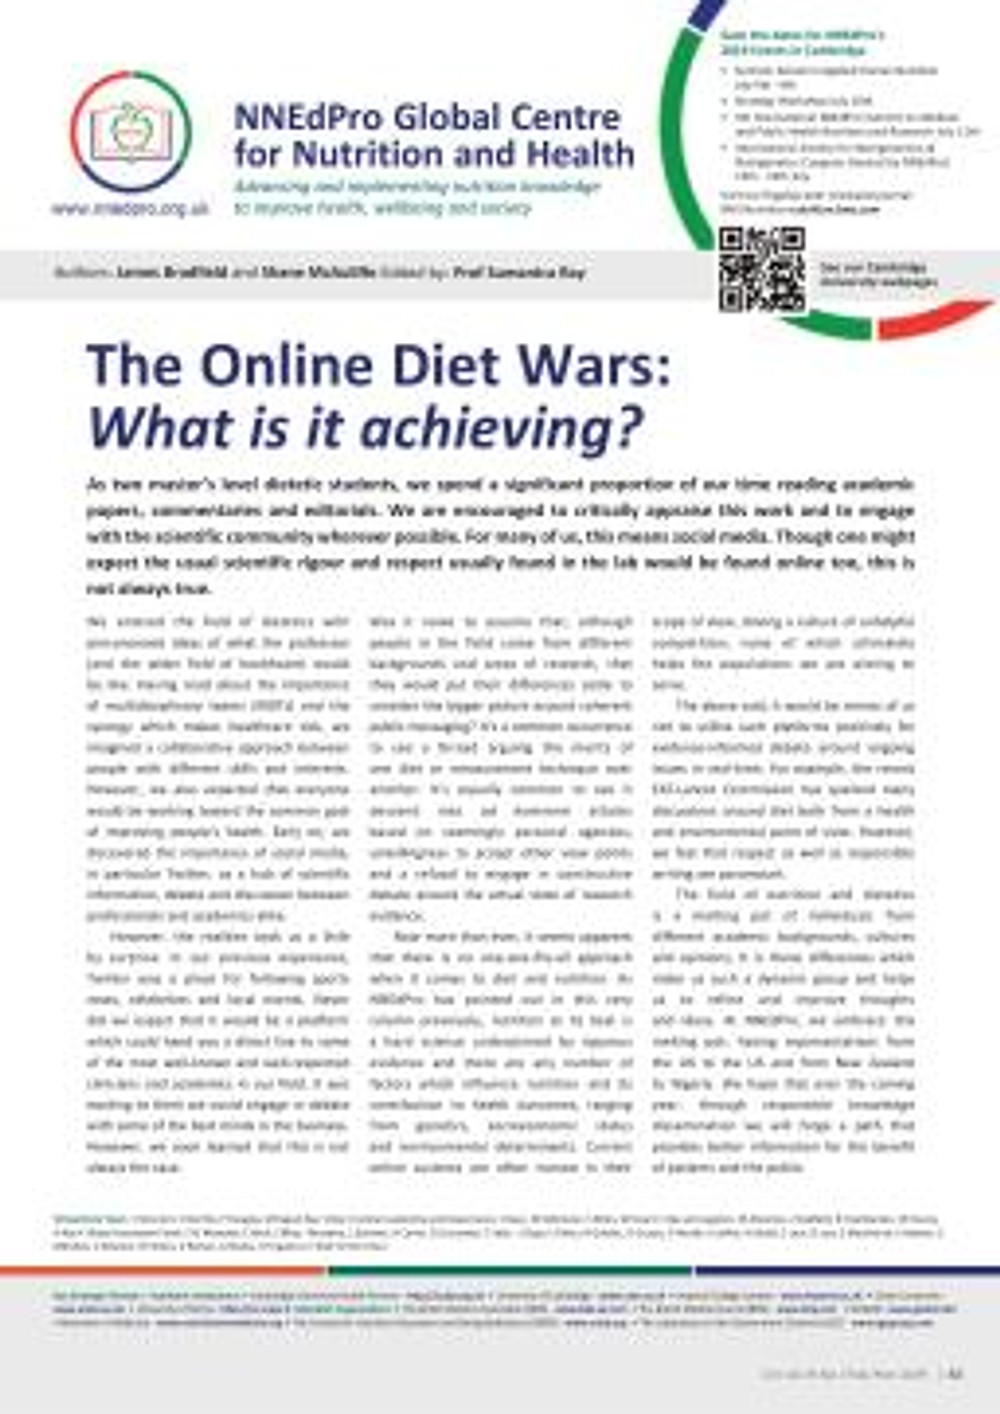 Online Diet Wars - NNEdPro article in CN